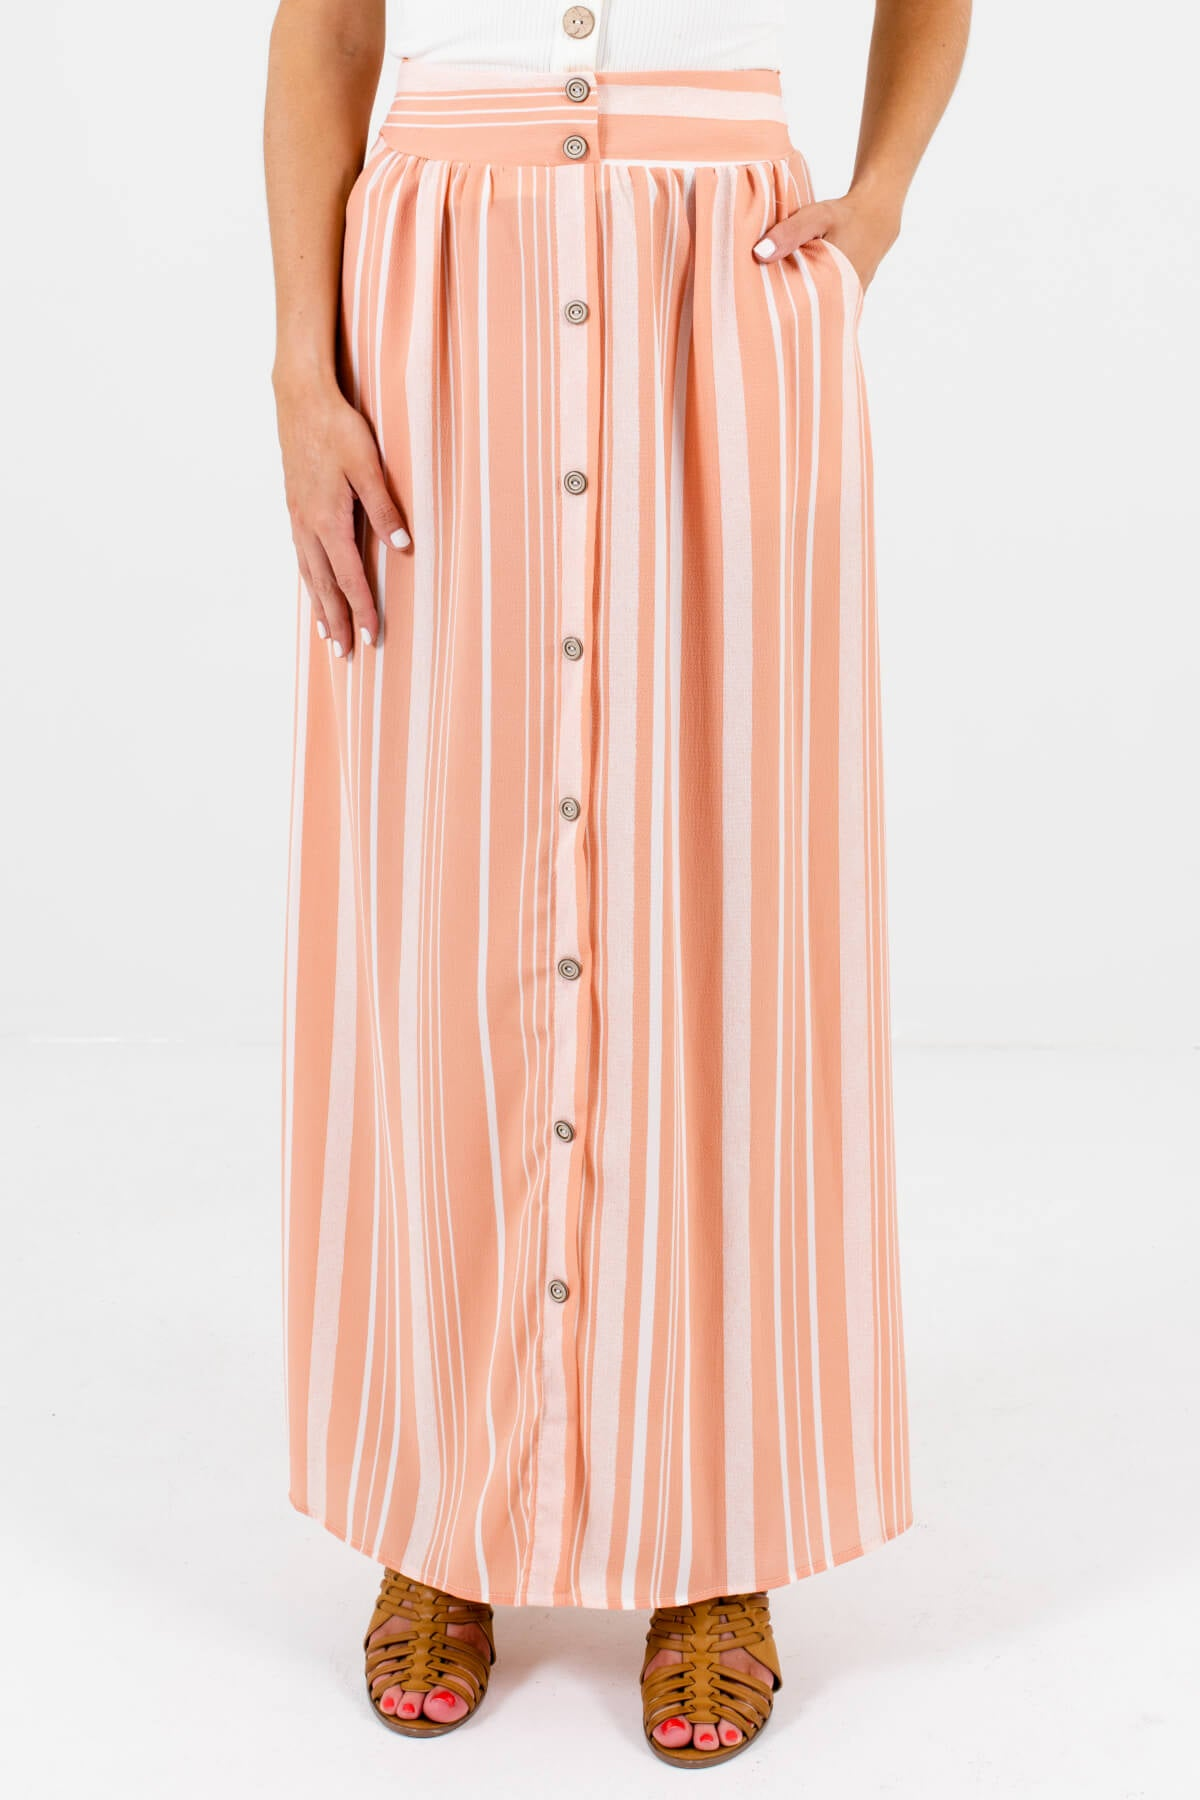 Peach Pink and White Striped Boutique Maxi Skirts for Women